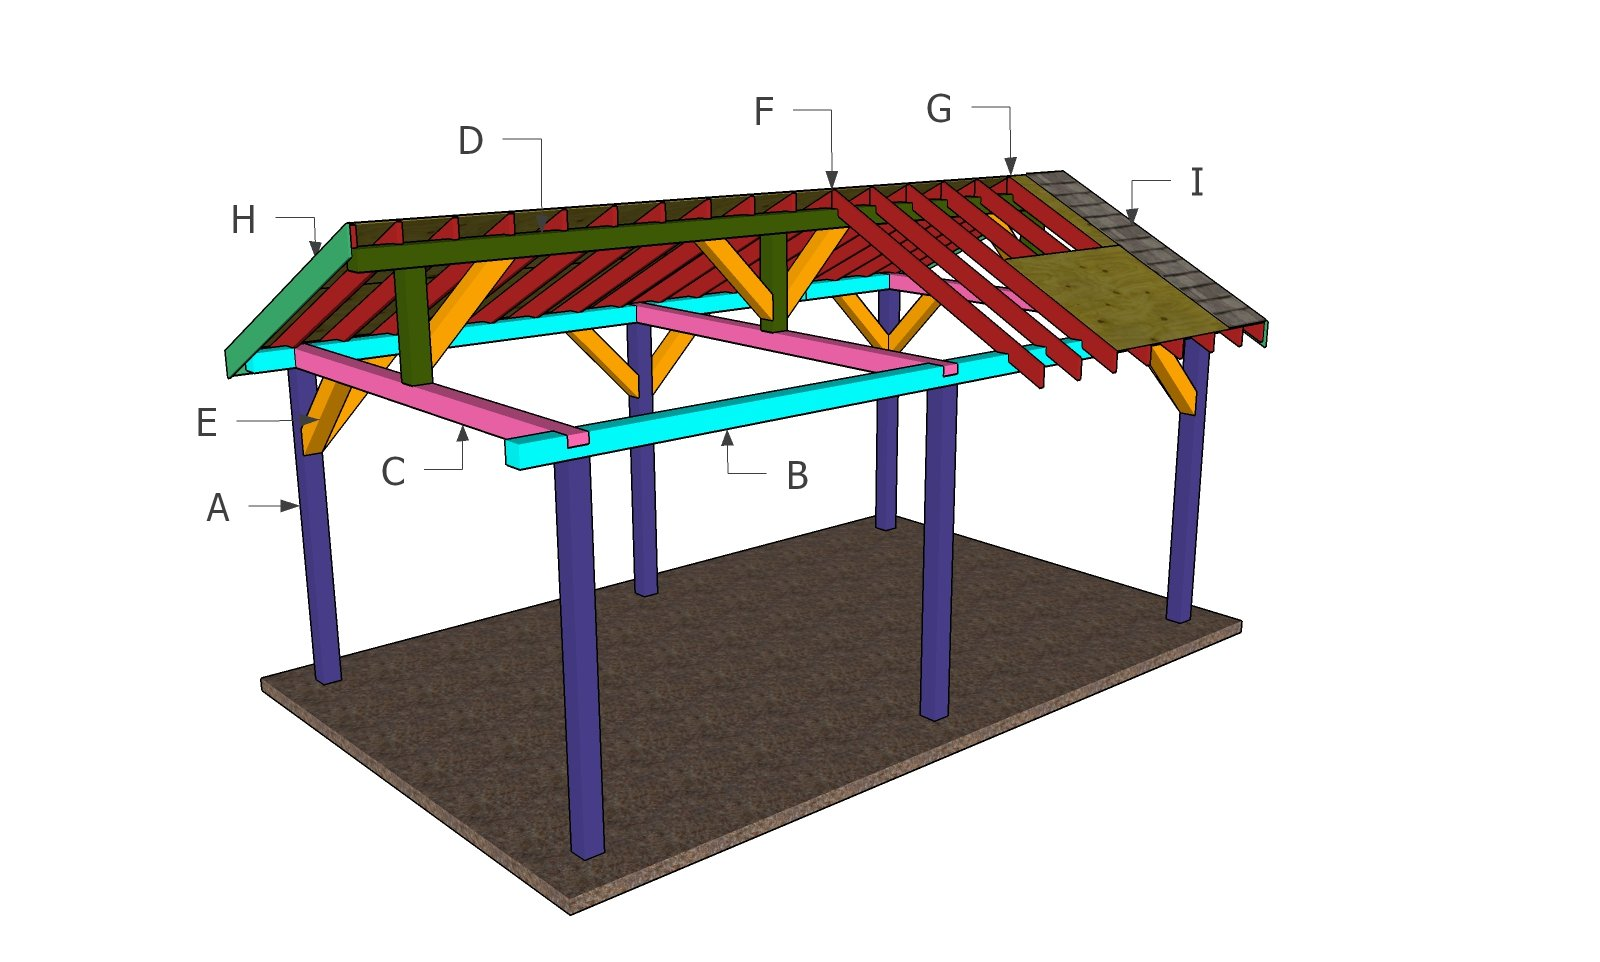 12x20 Backyard Pavilion - Gable Roof Plans